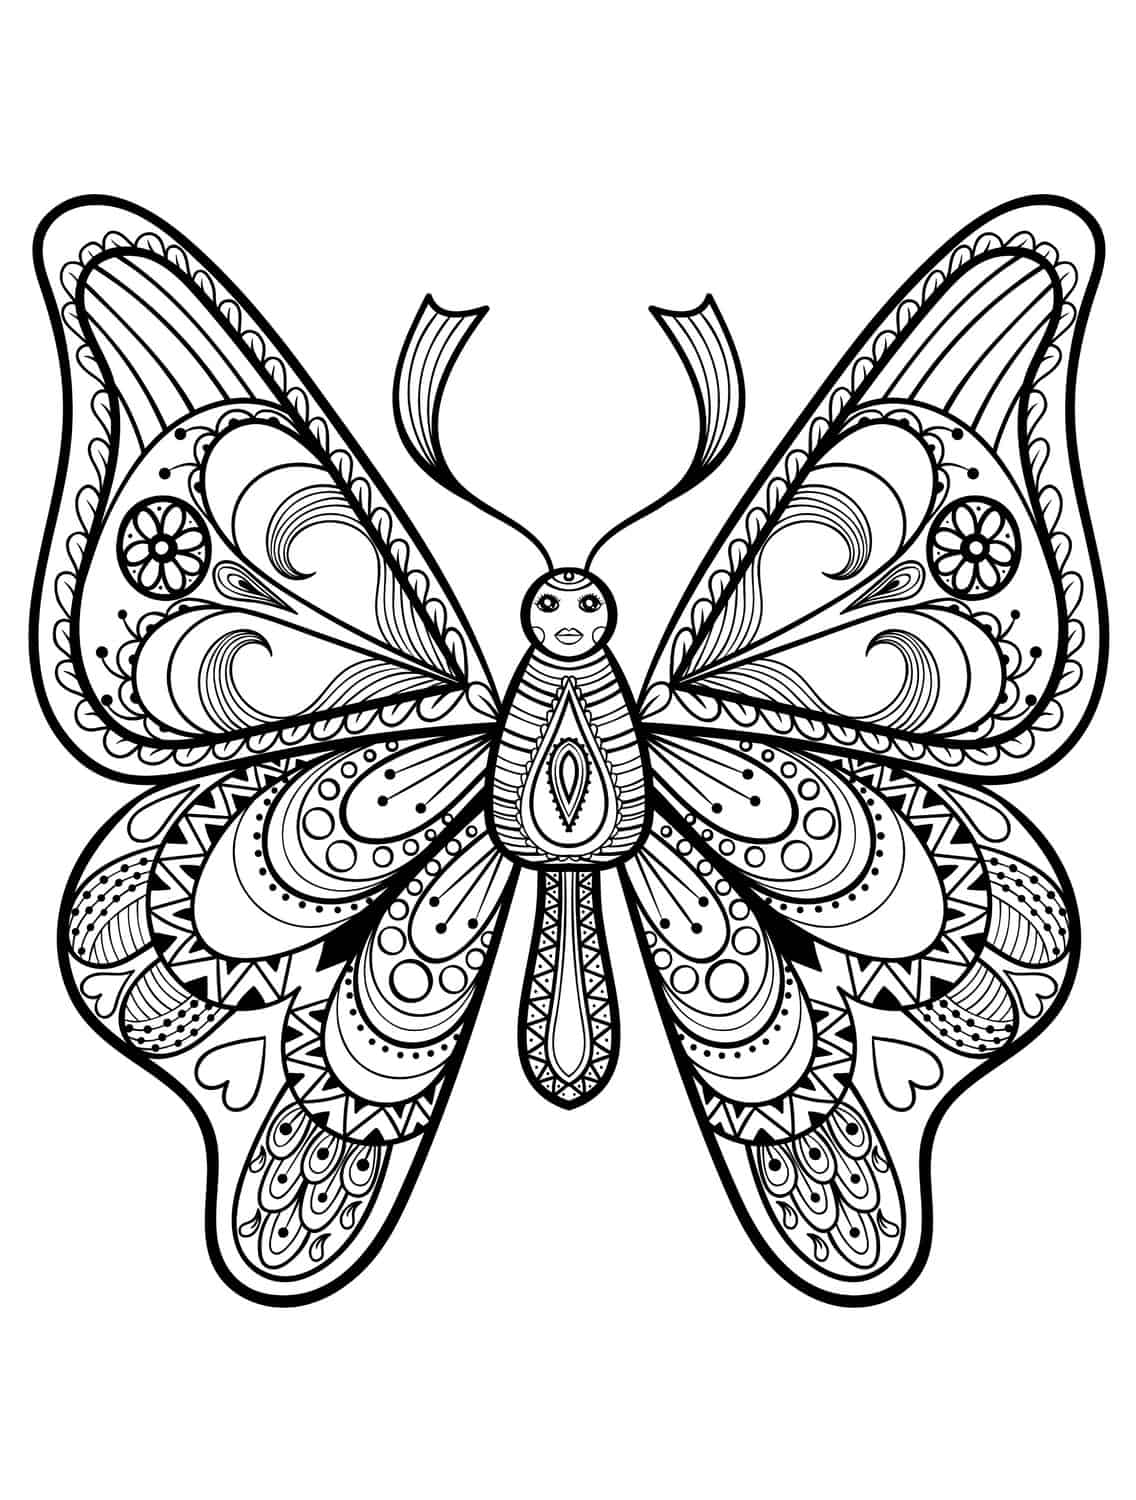 23 Free Printable Insect Animal Adult Coloring Pages Page 6 Of 24 Nerdy Mamma